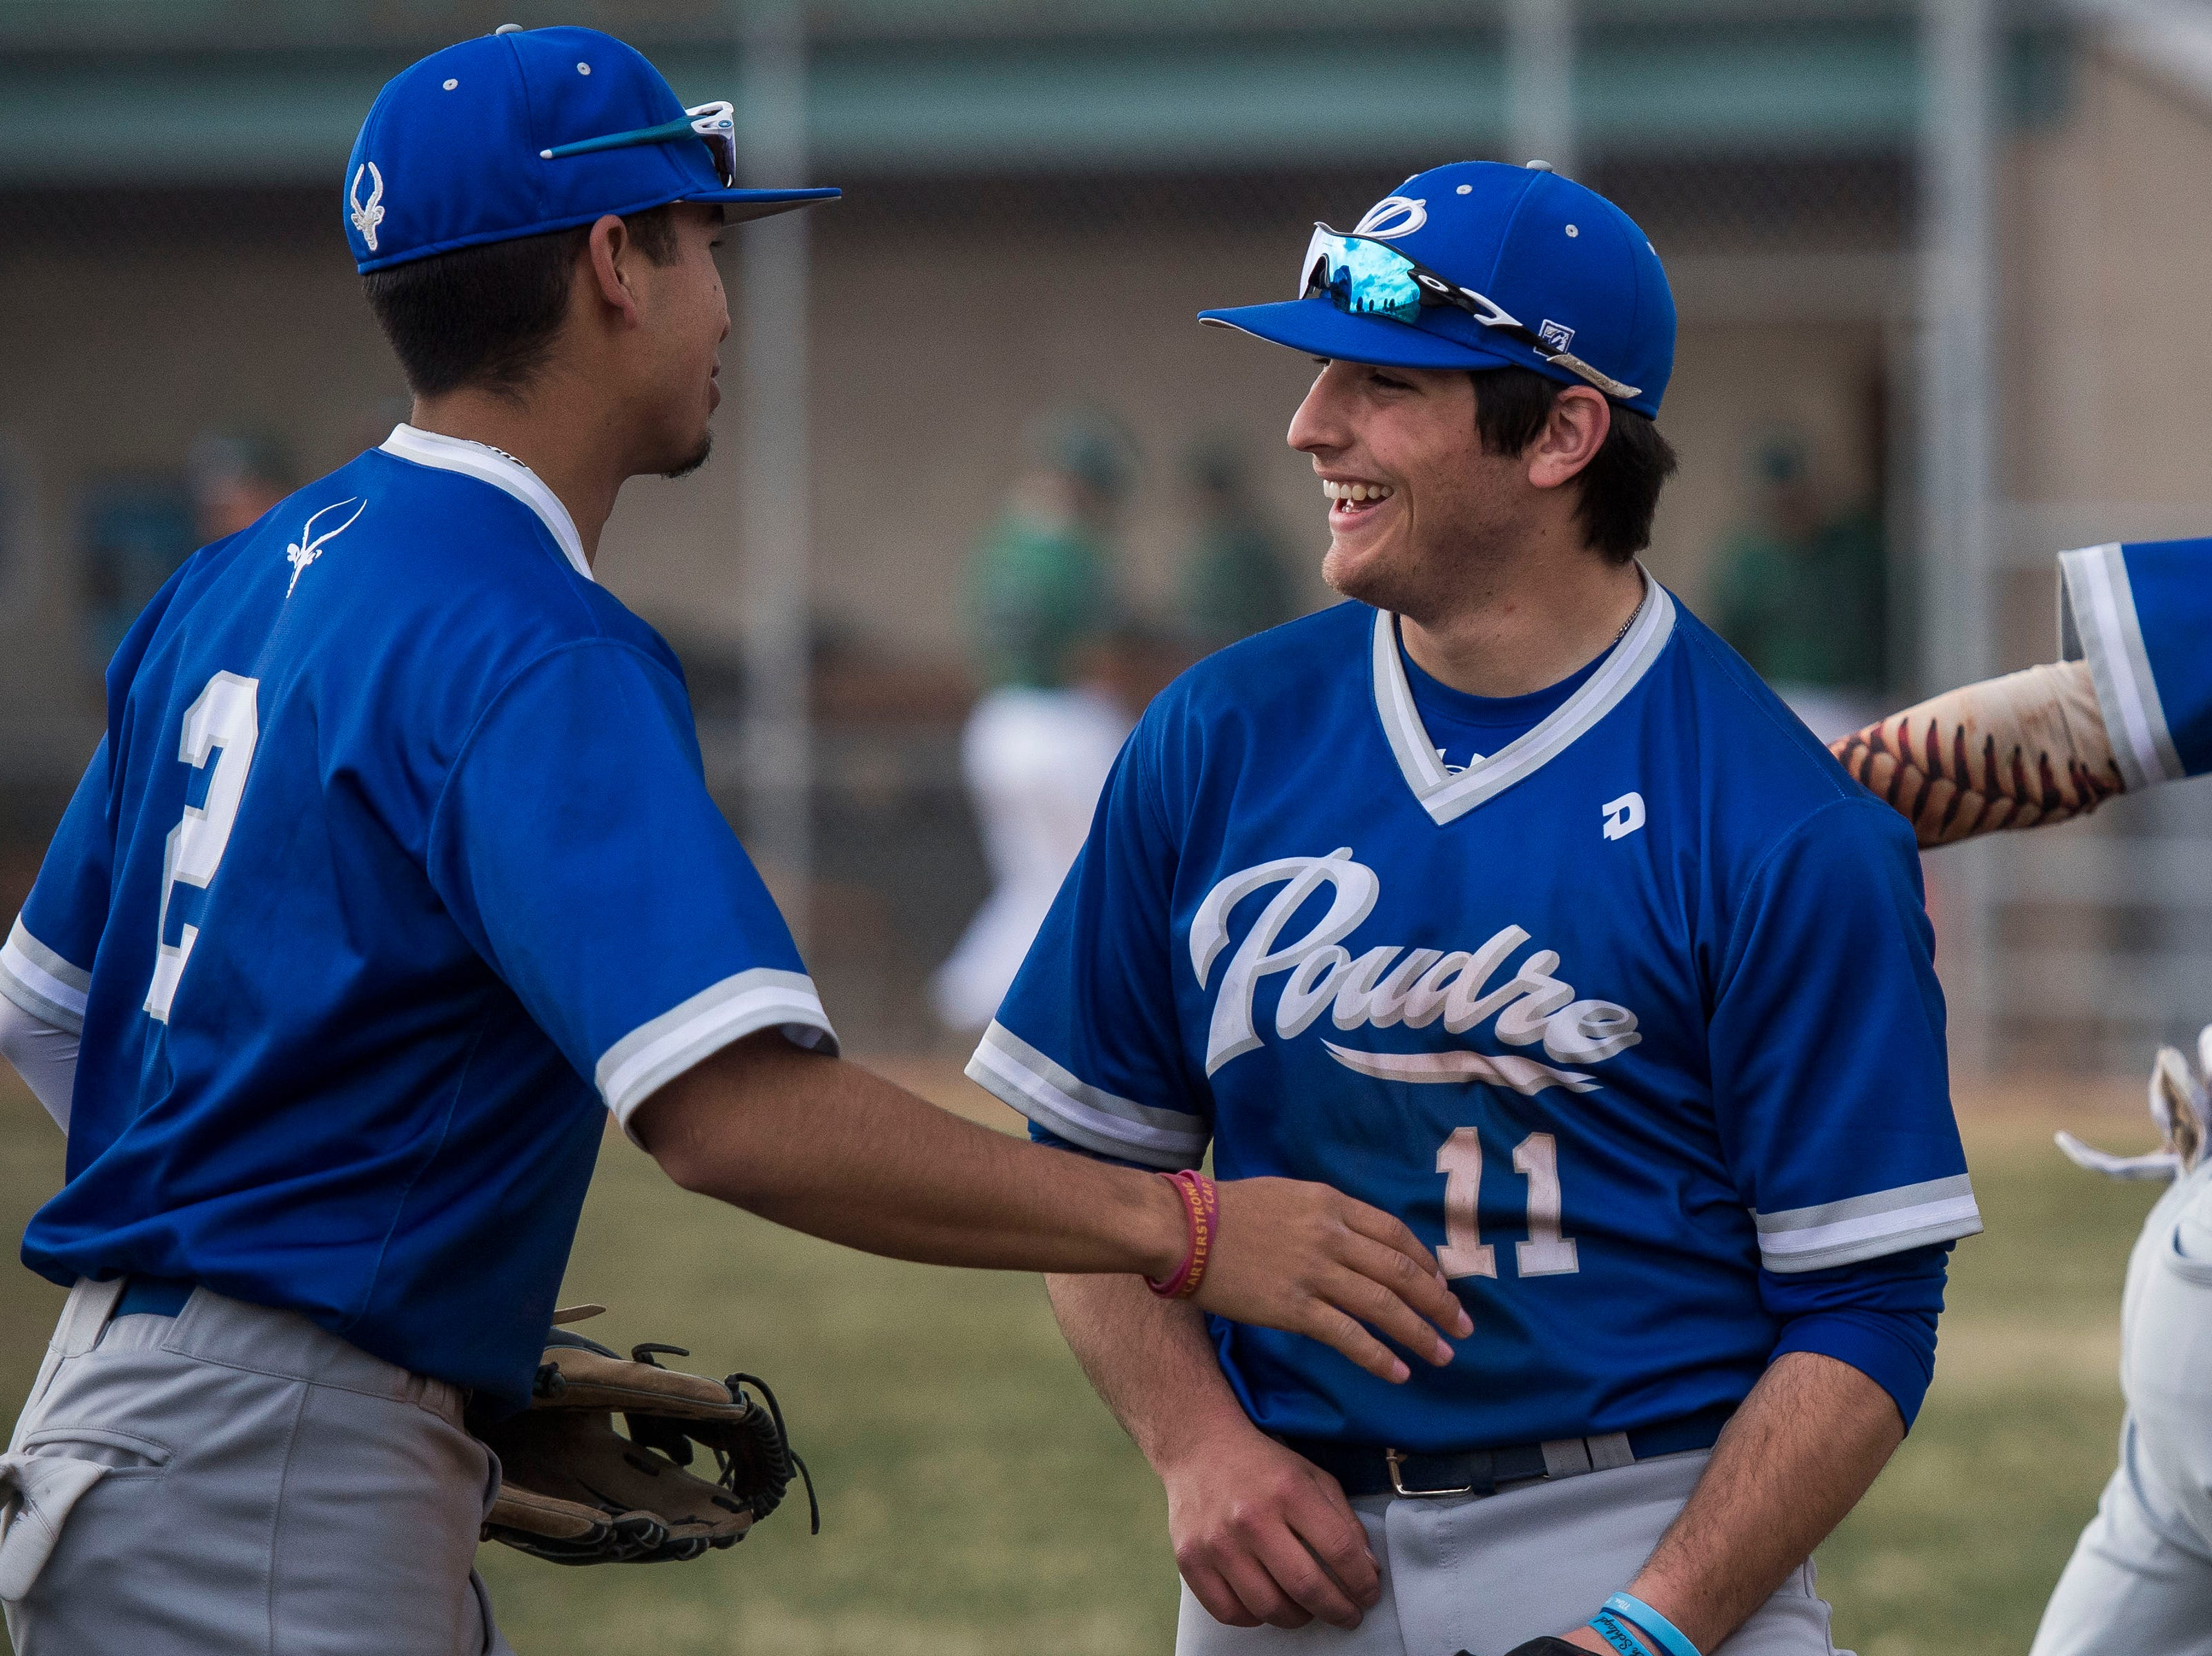 Poudre High School first baseman Jesse Martinez (11) celebrates with shortstop Sergio Tarango (2) during a game against Fossil Ridge High School on Wednesday, April 3, 2019, at Fossil Ridge High School in Fort Collins, Colo.